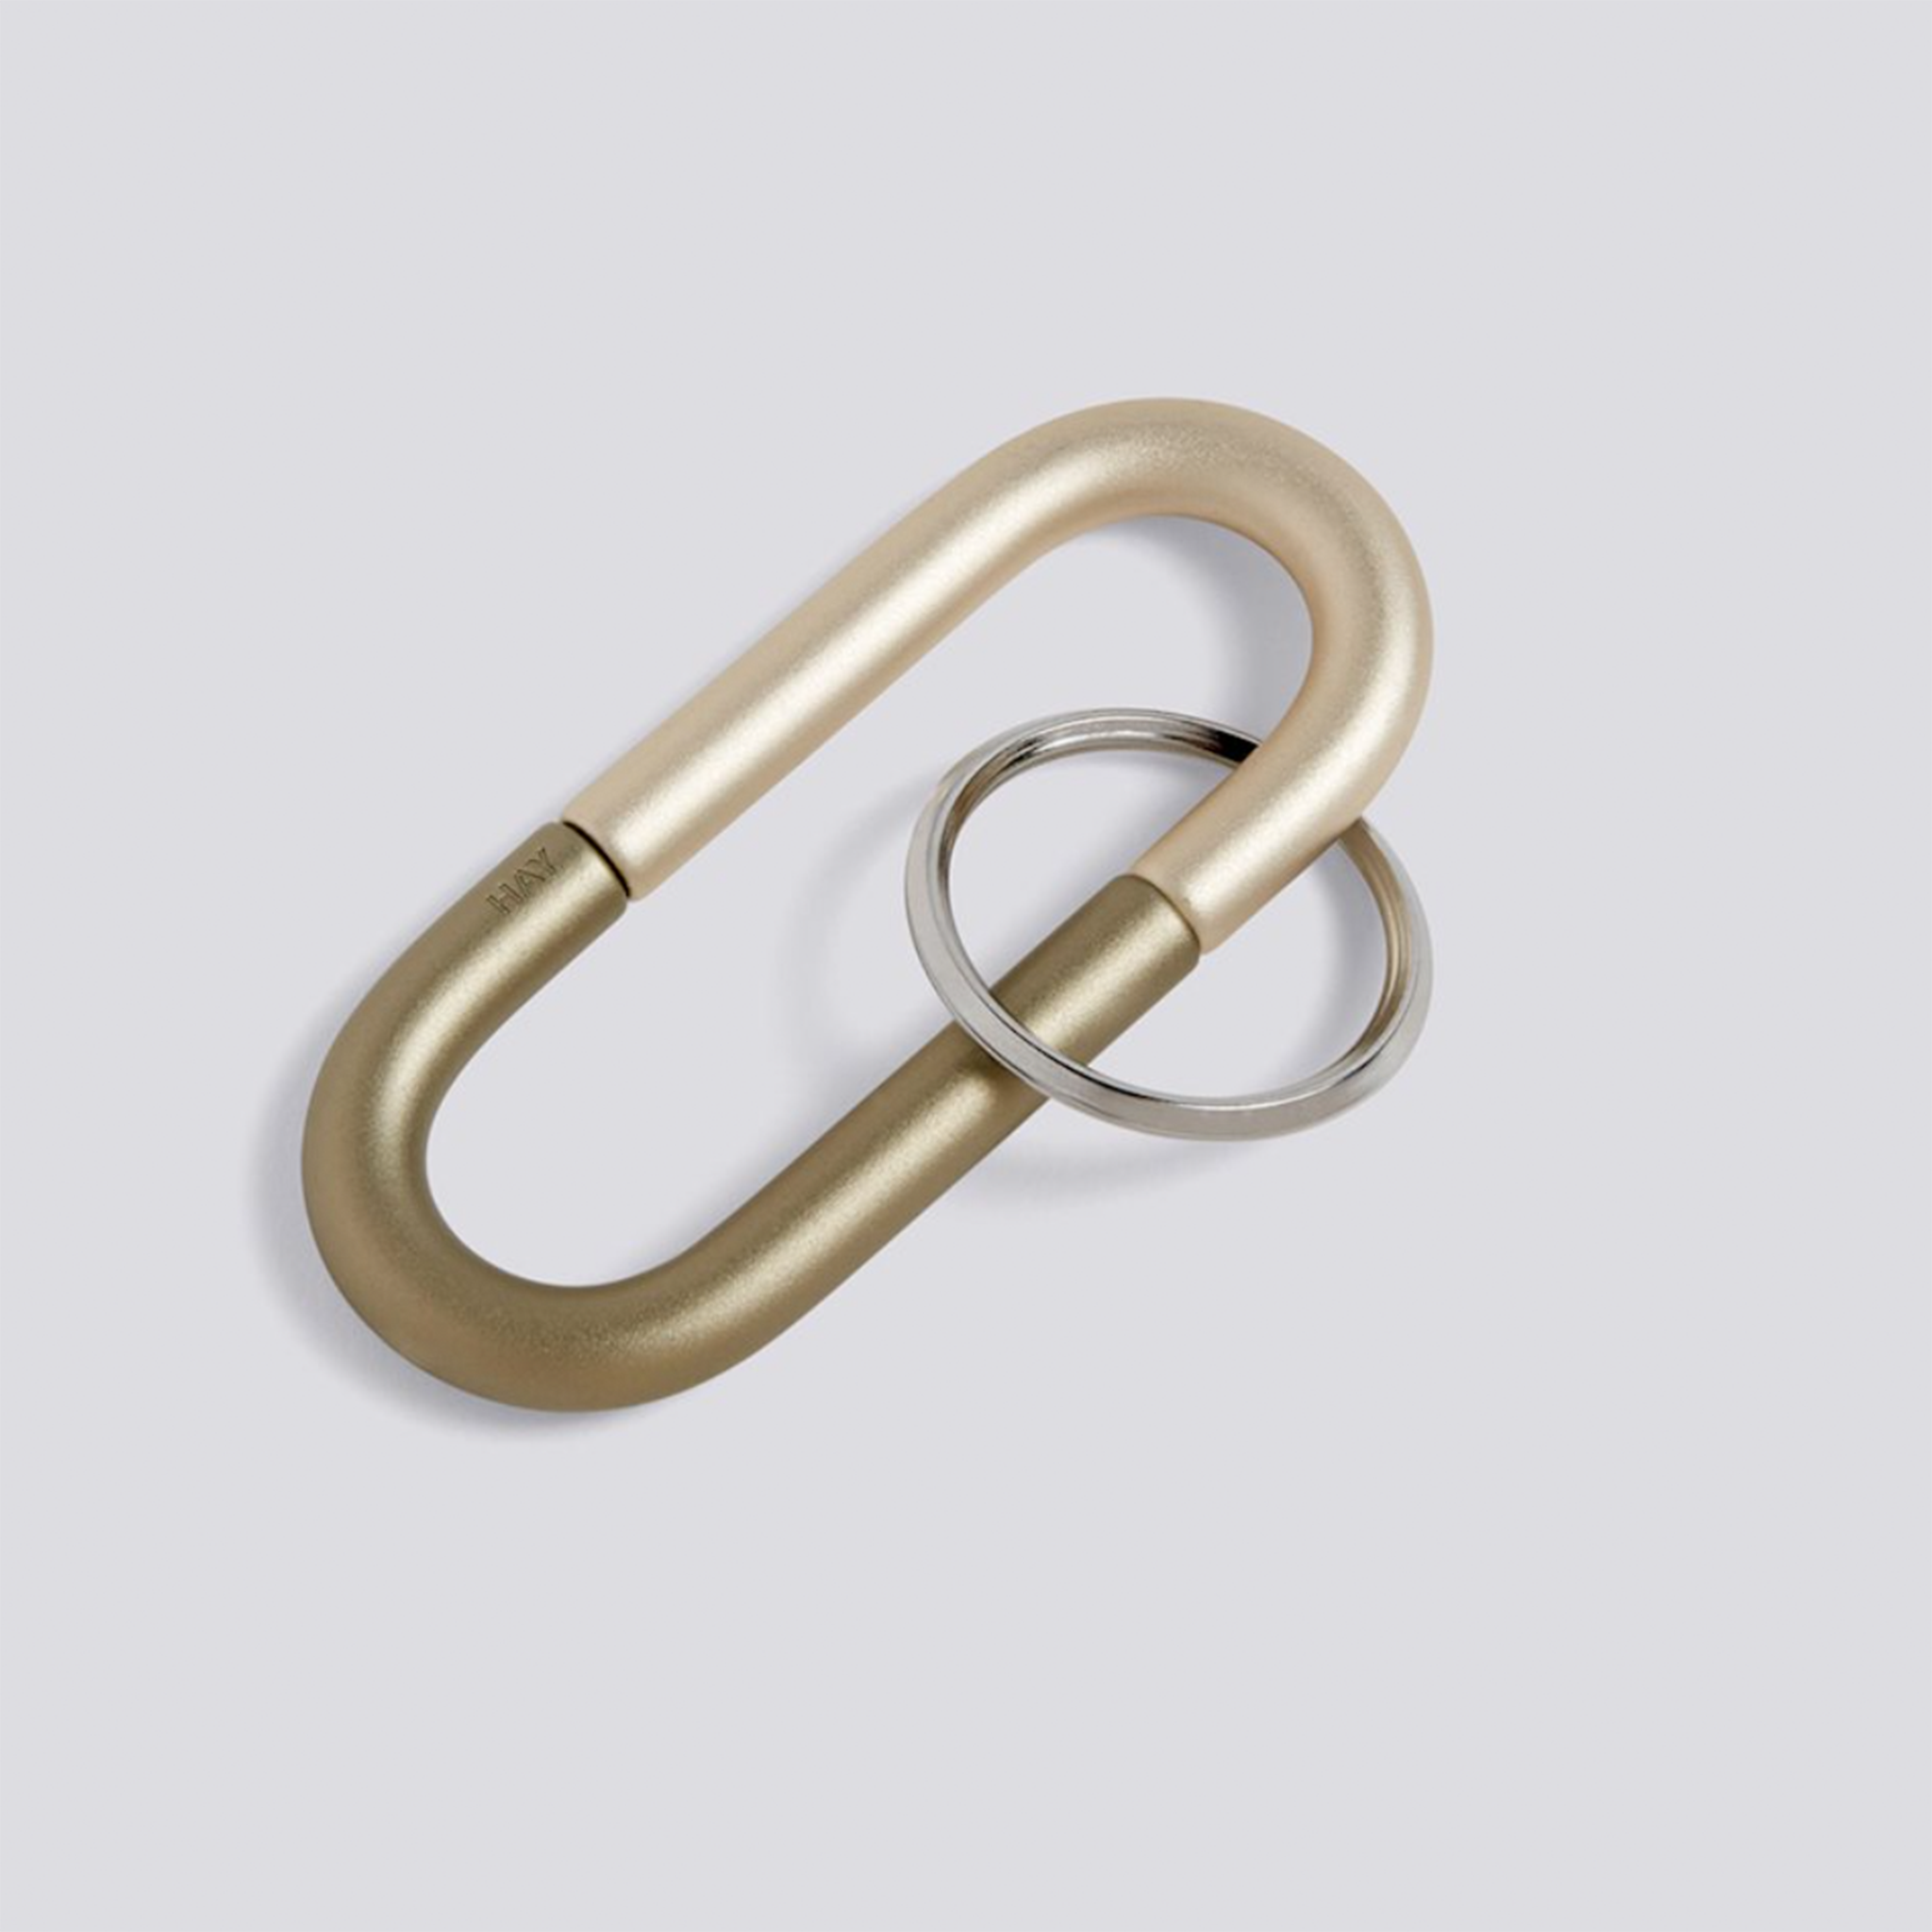 Cane Key Ring by Hay